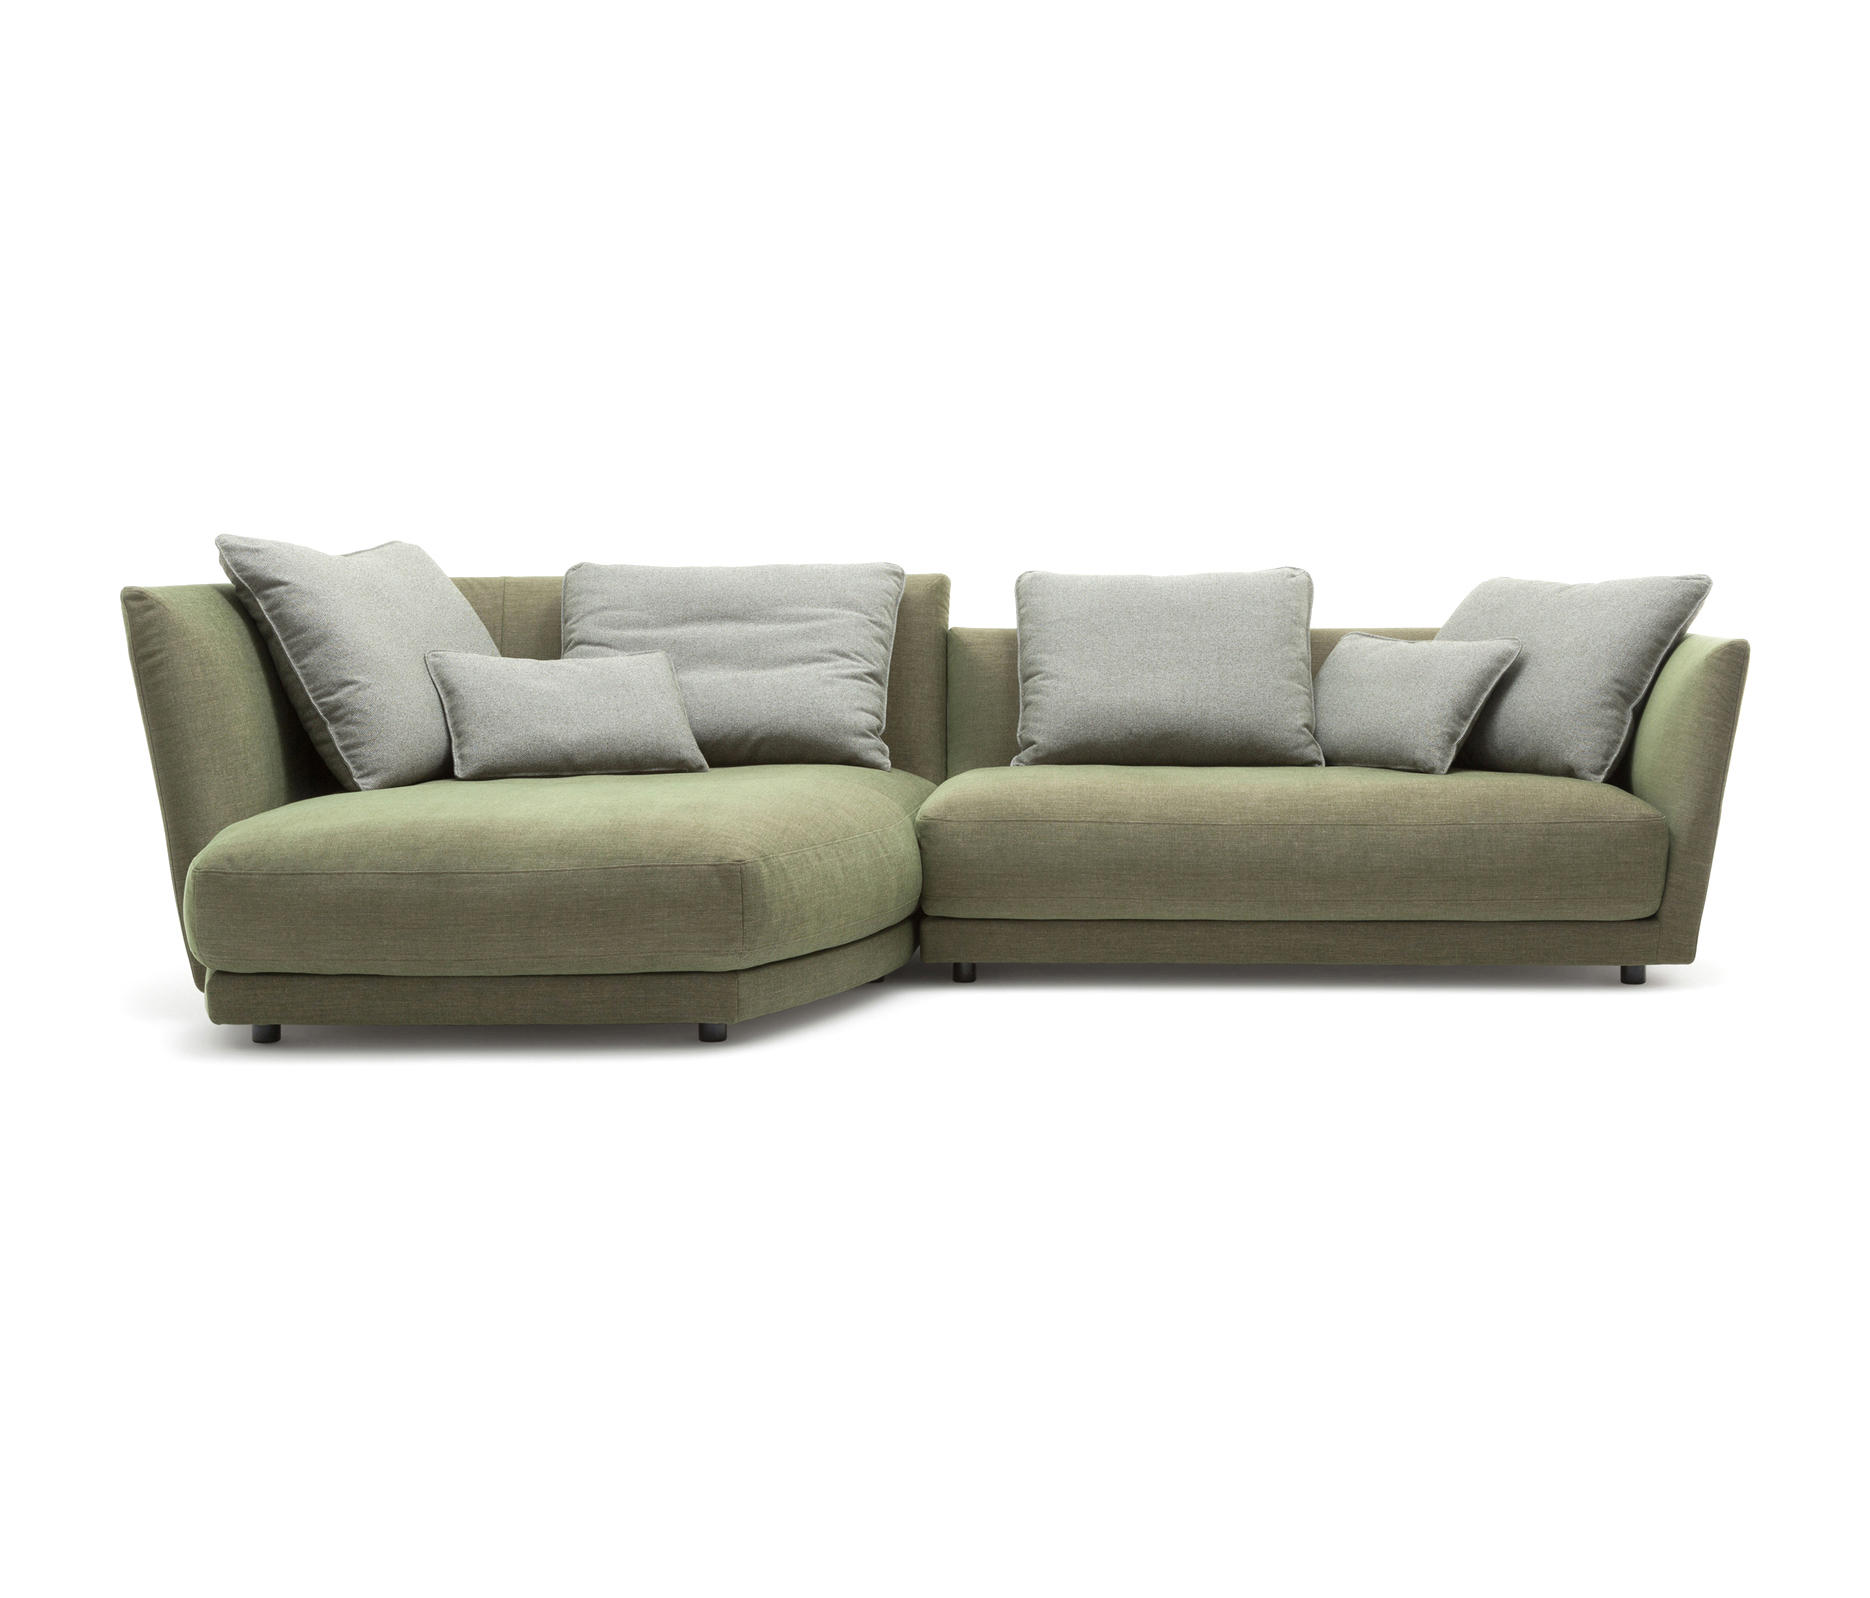 rolf benz tondo modular sofa systems from rolf benz